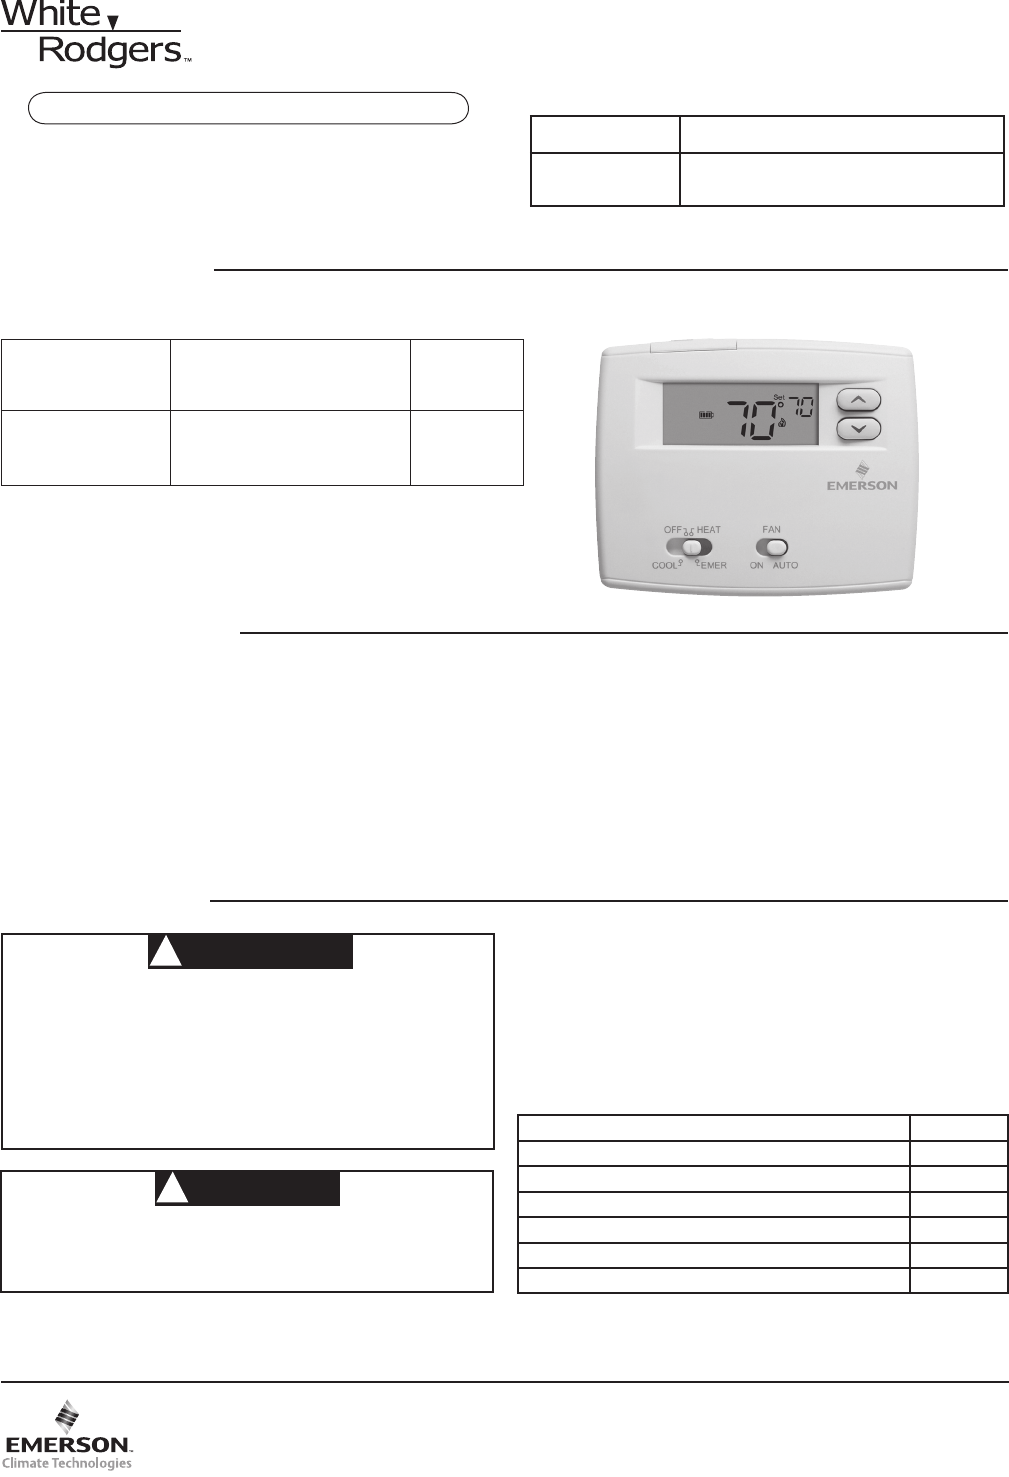 white rodgers thermostat manual 1f89 211